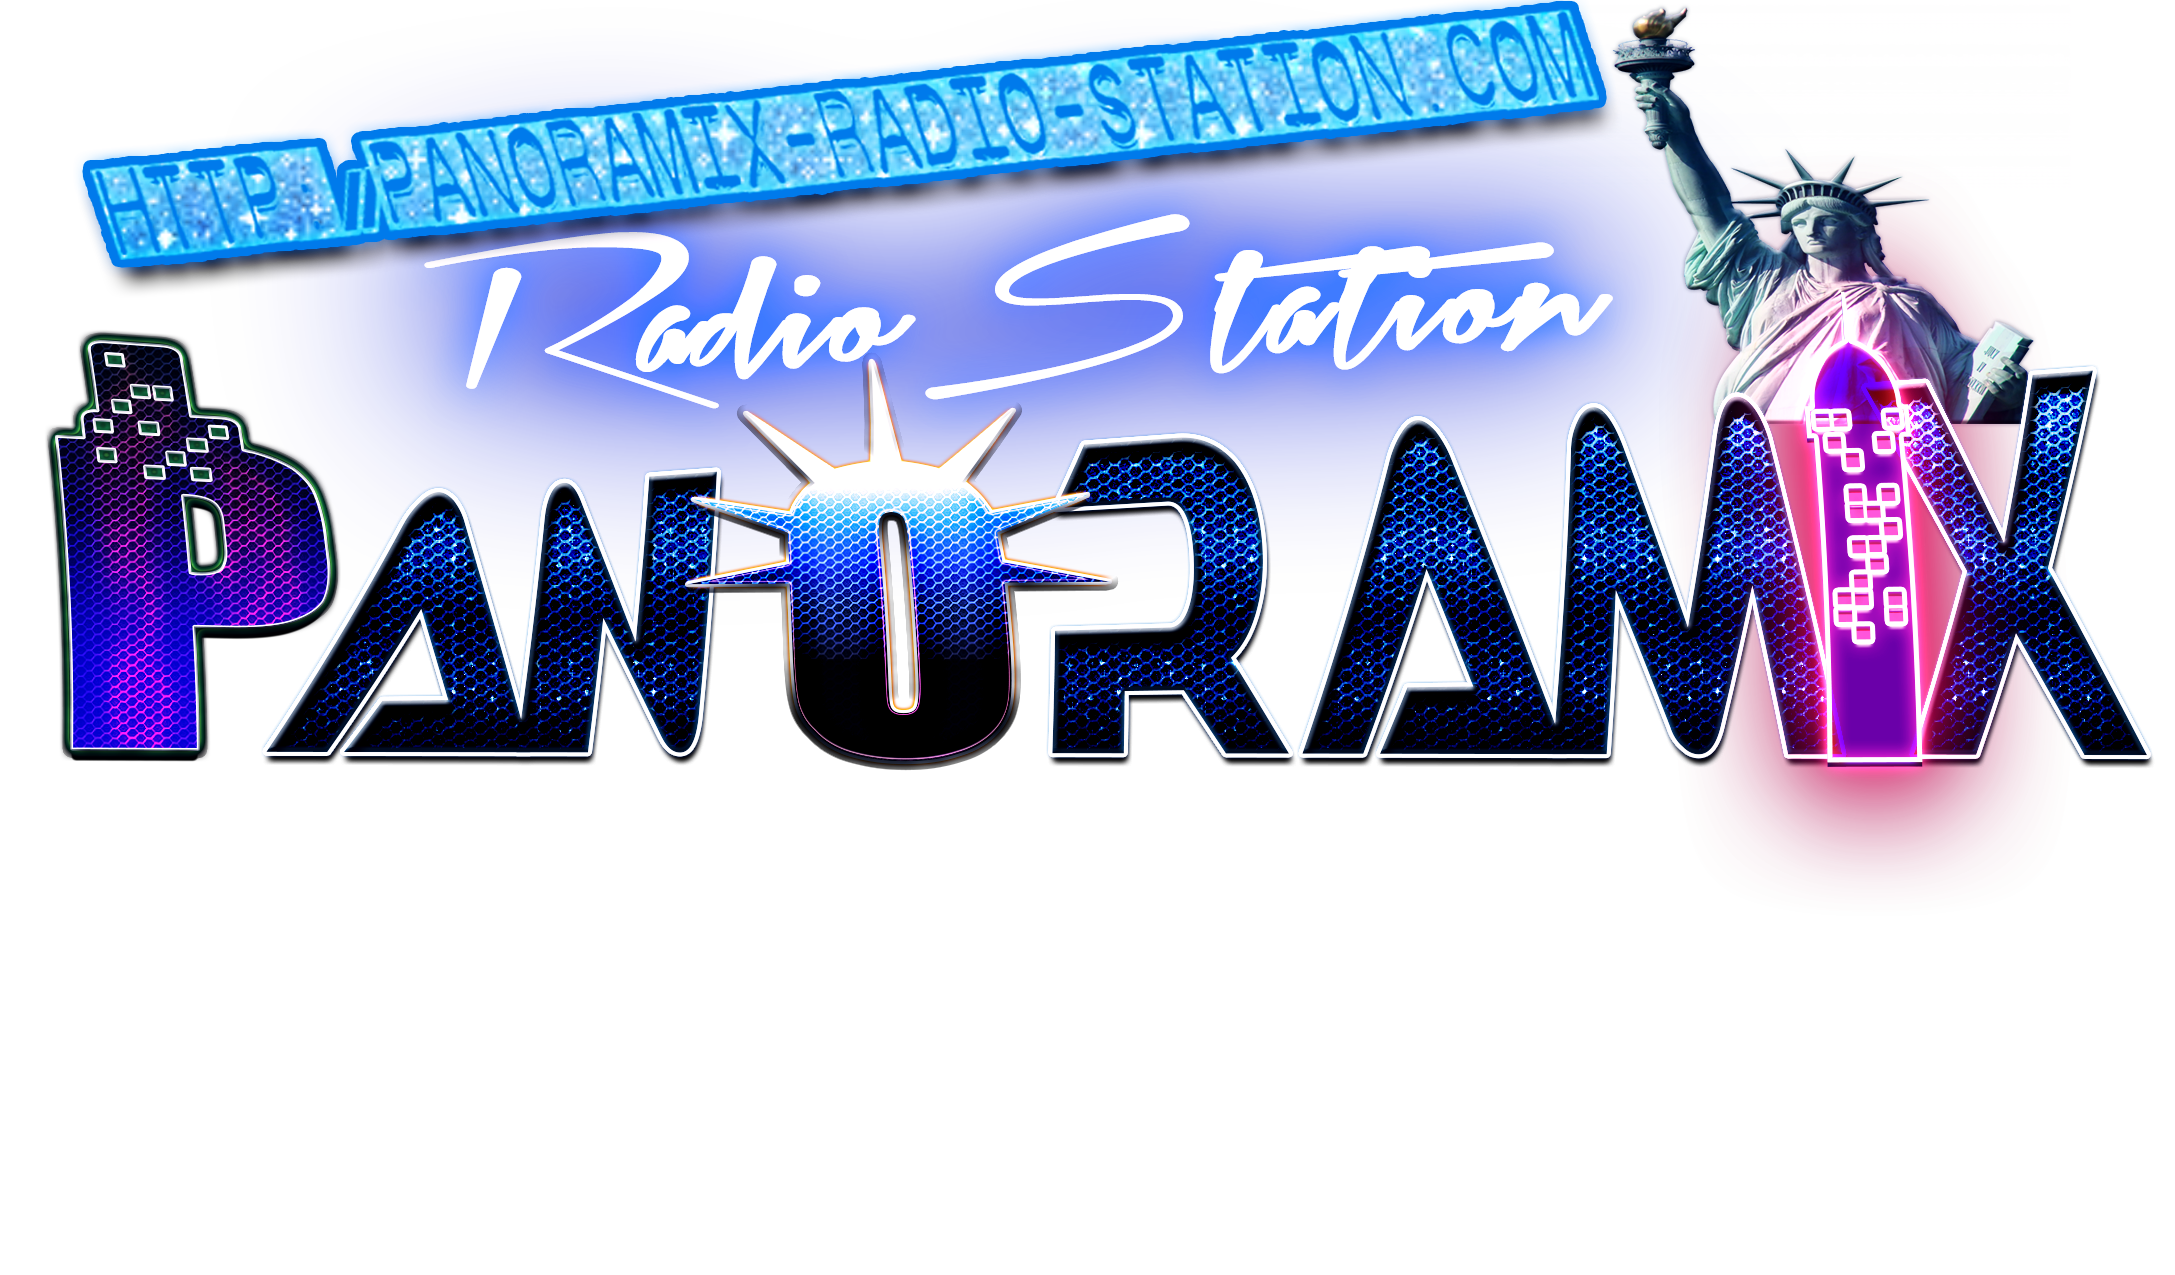 http://panoramix-radio-station.com/wp-content/uploads/2018/07/02-PANORAMIX-.png